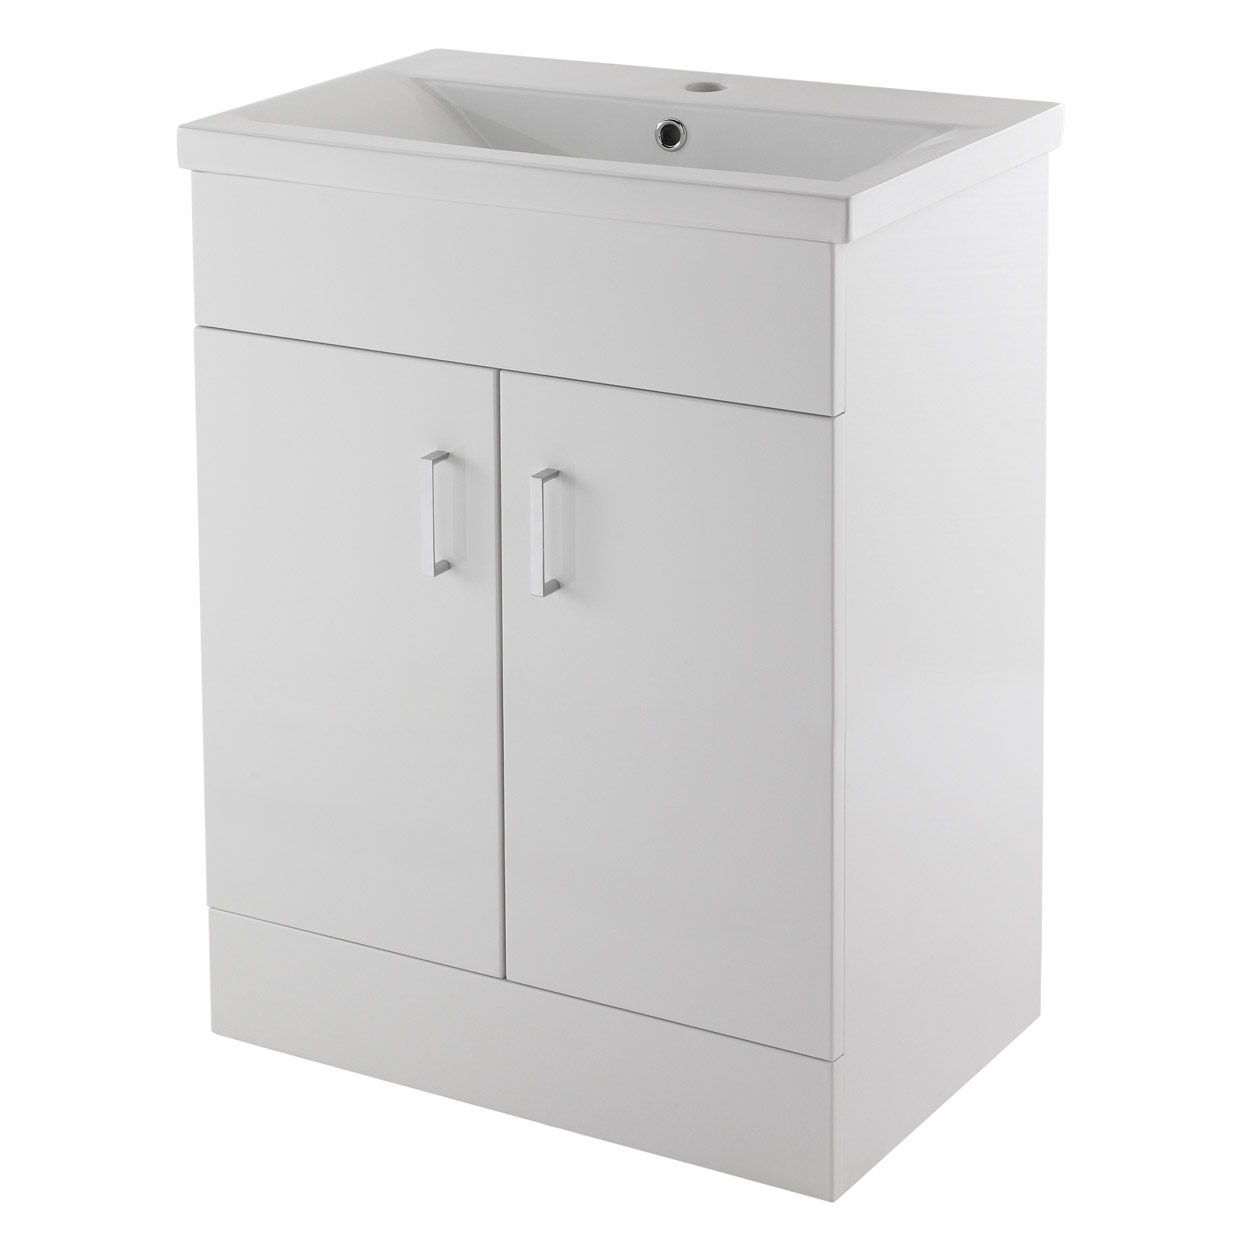 Premier Eden Floor Standing 2-Door Vanity Unit and Basin 1 Gloss White - 600mm Wide-1